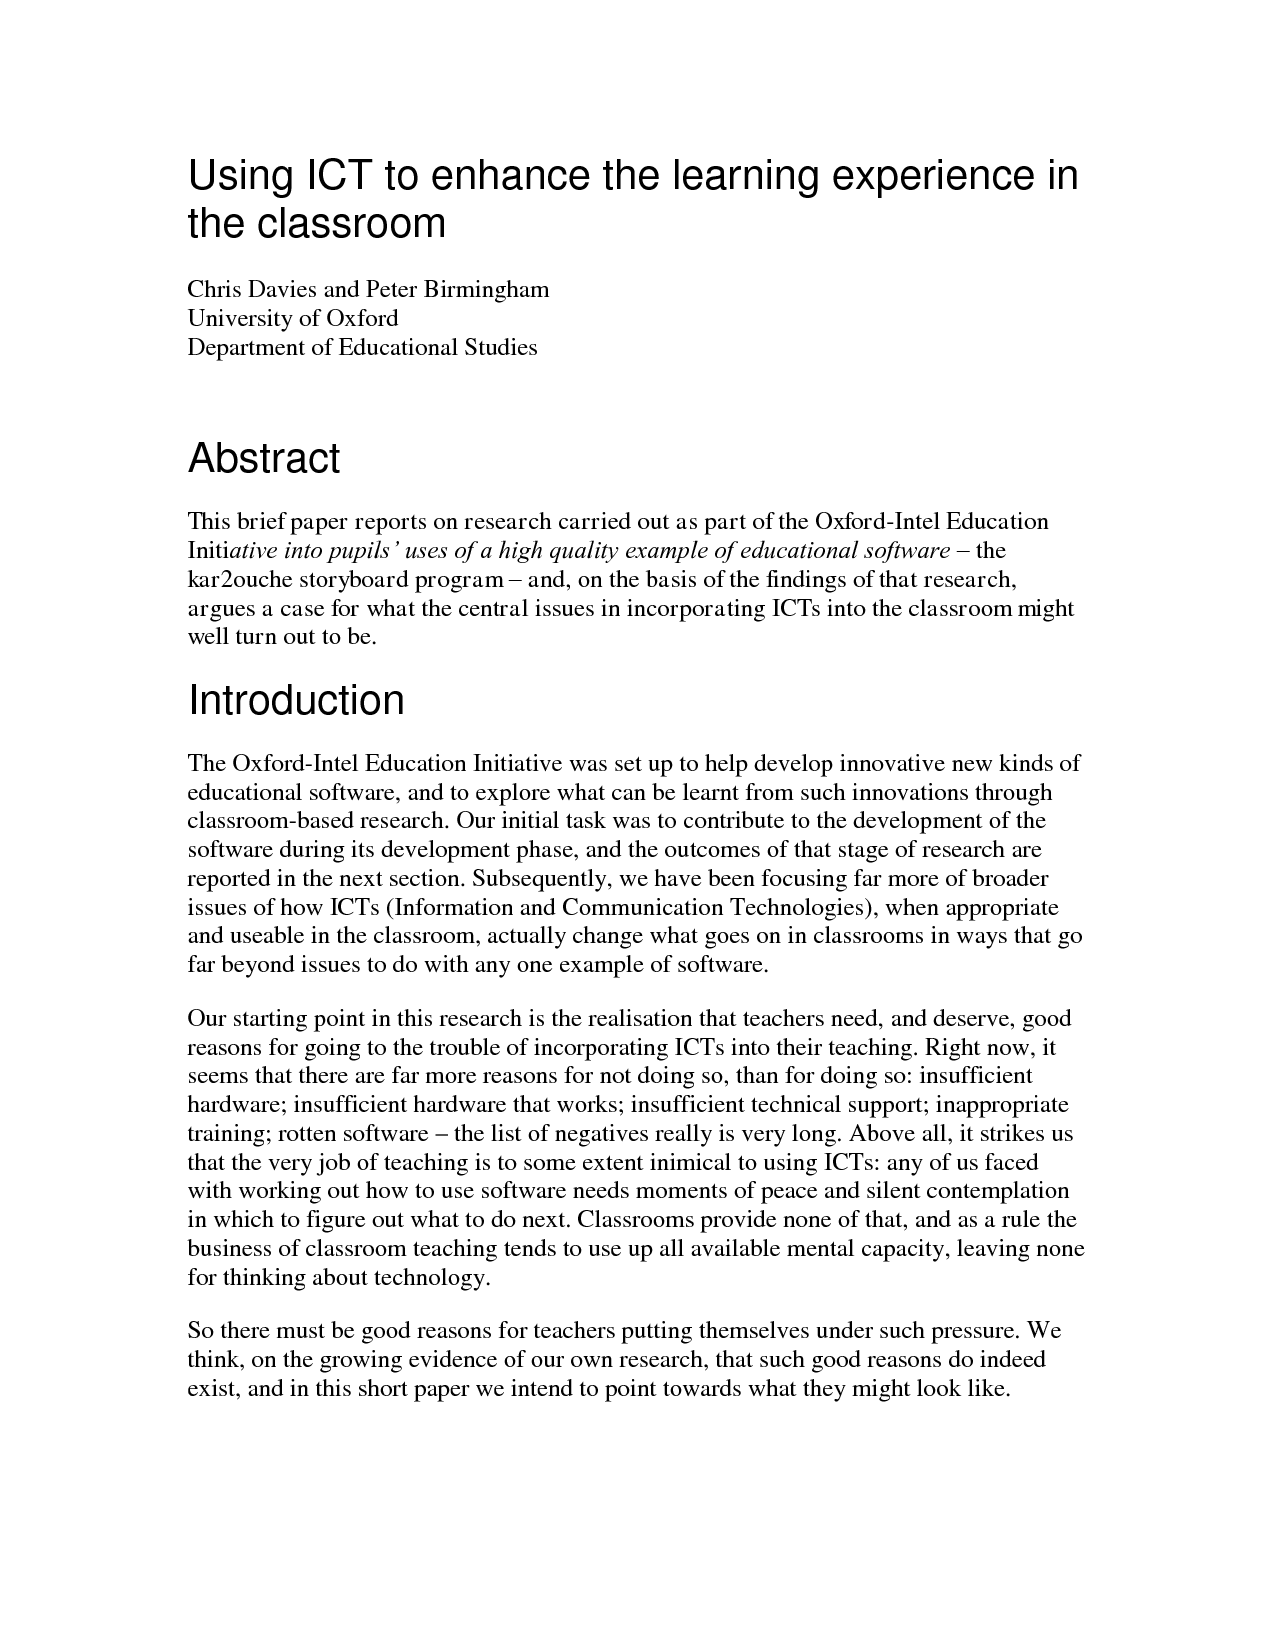 Abstract Essay Where Does The Abstract Go In An Apa Research Paper